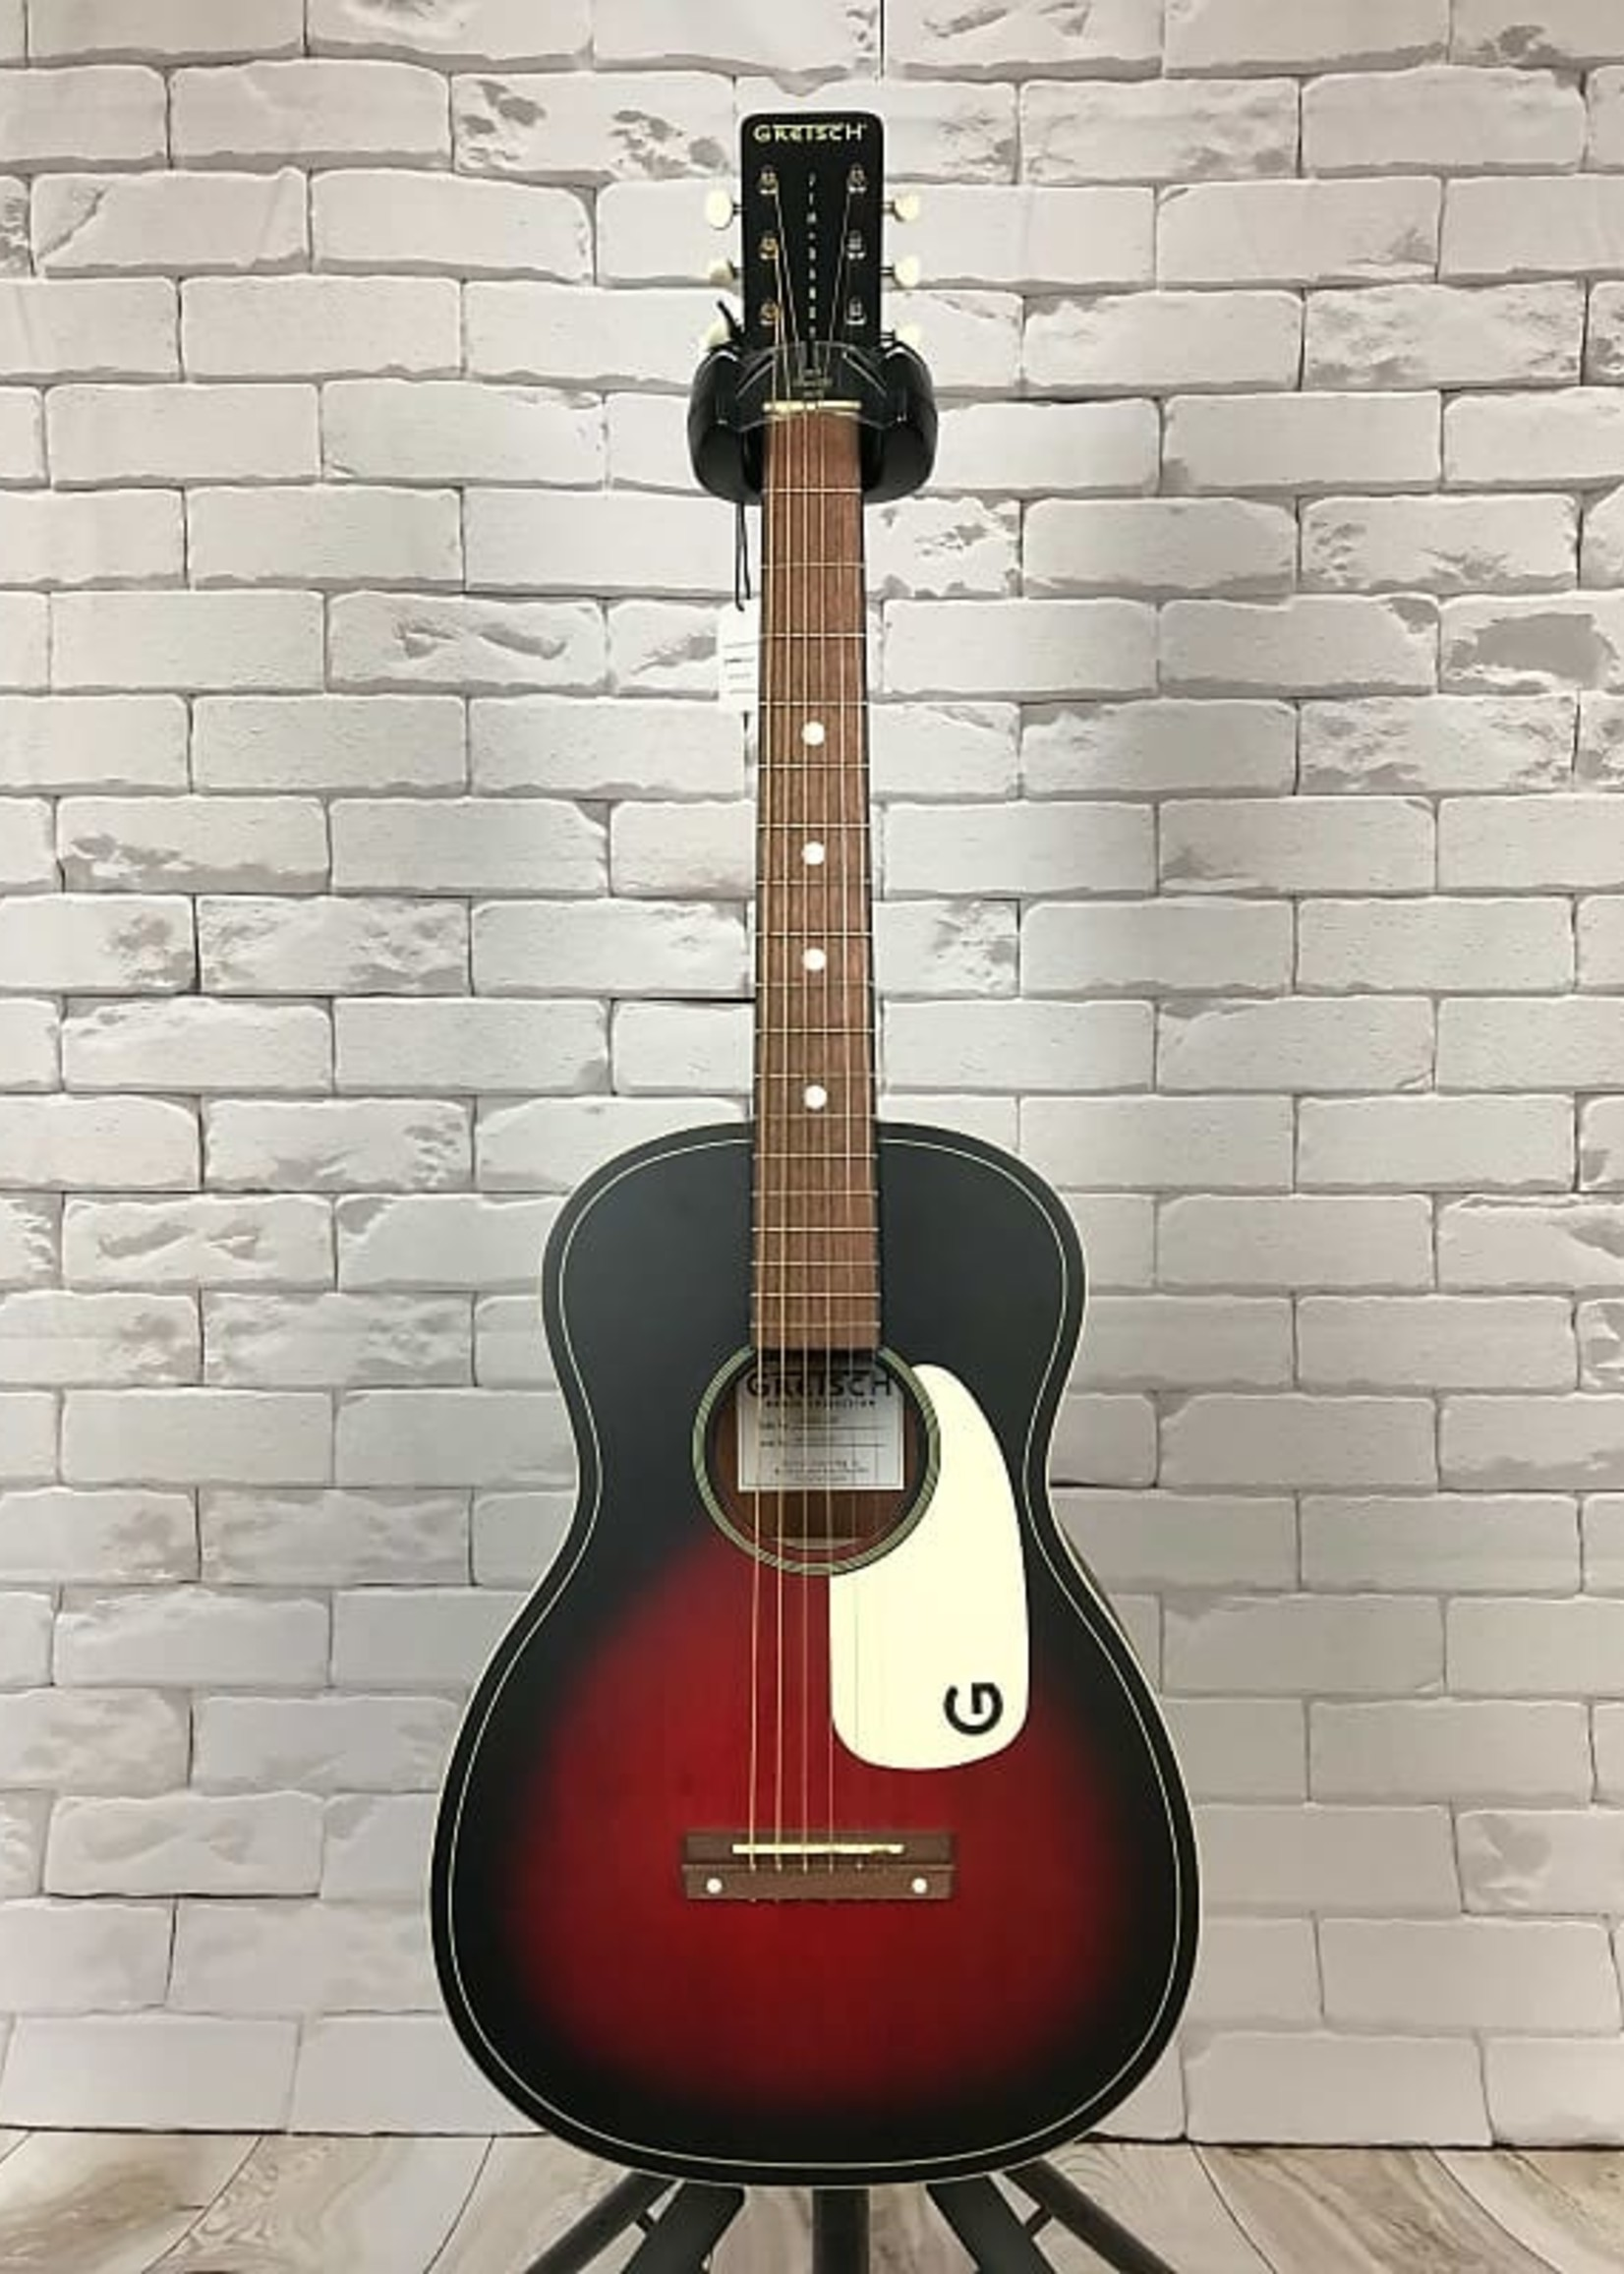 Gretsch Gretsch G9500 Jim Dandy